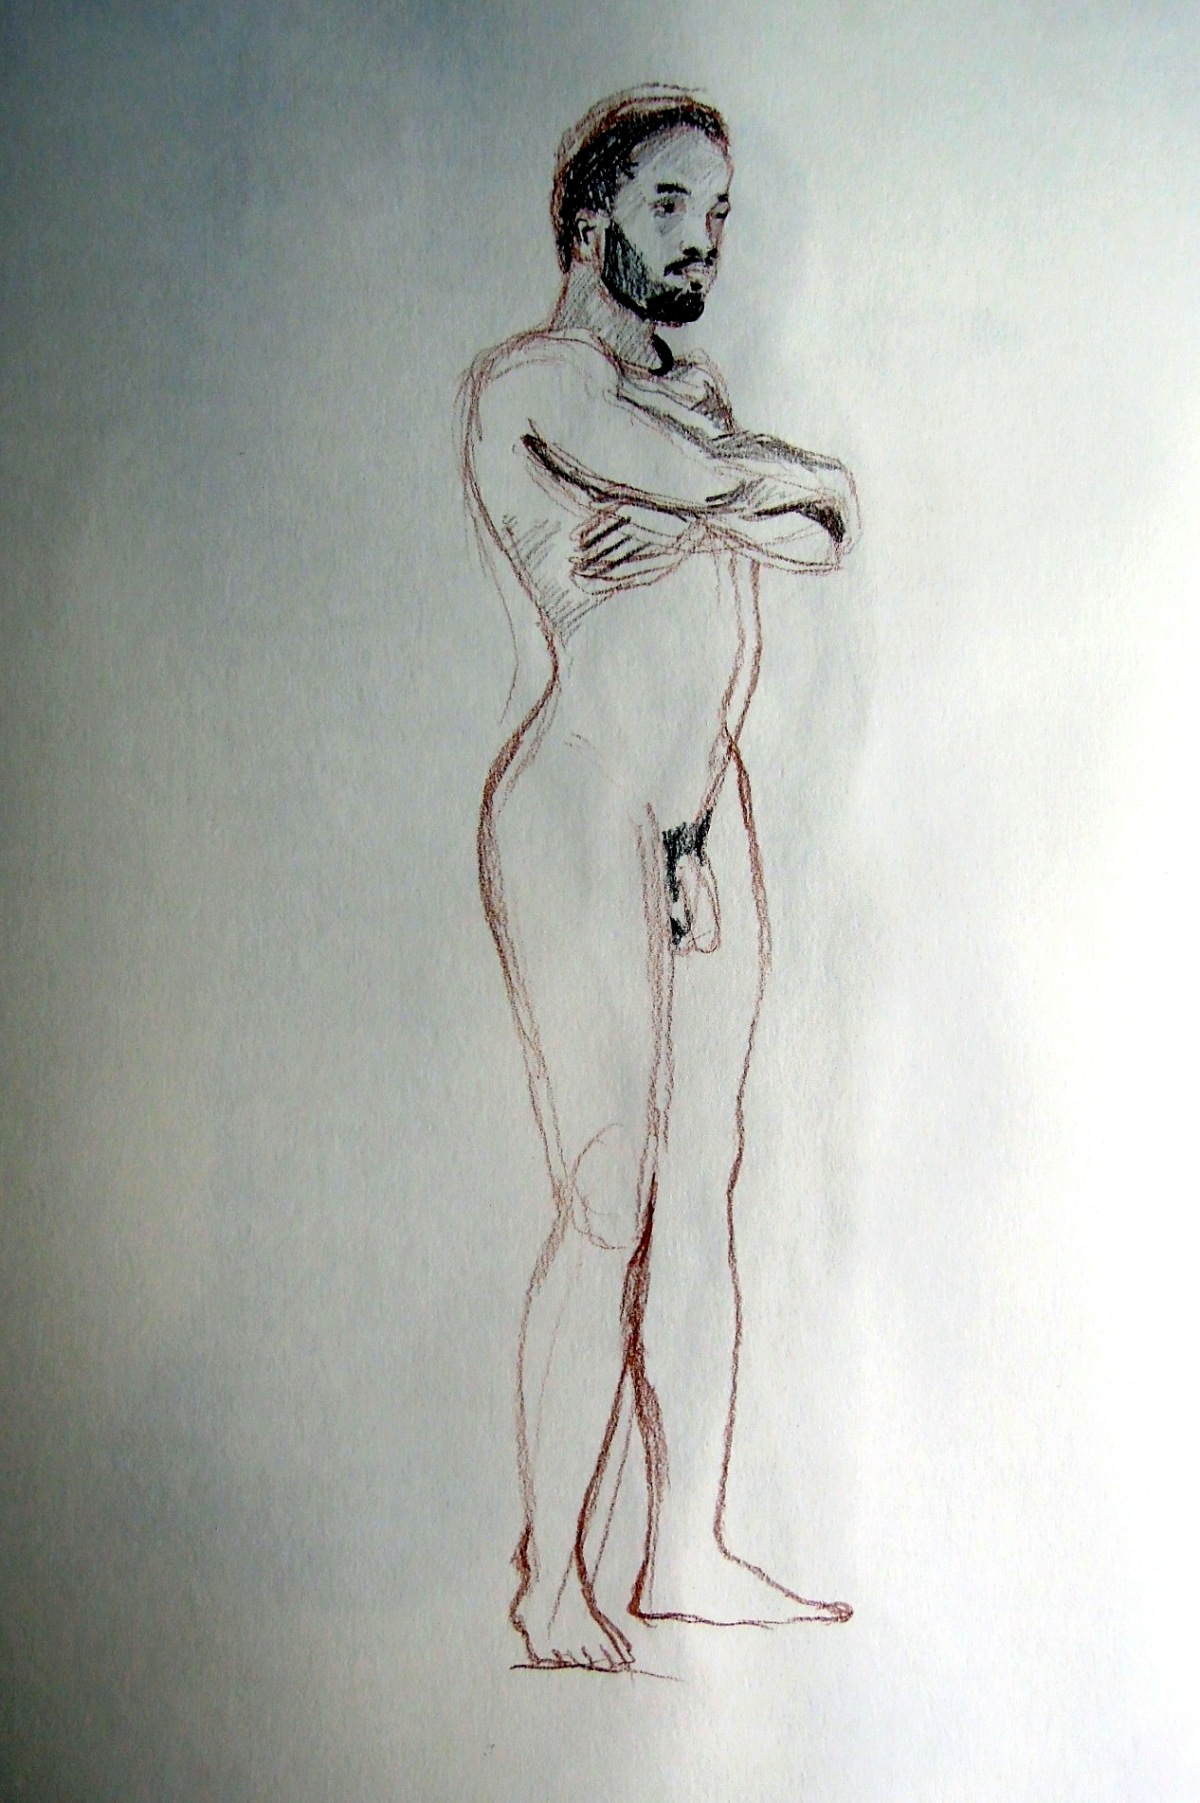 Pencil sketch of nude man standing